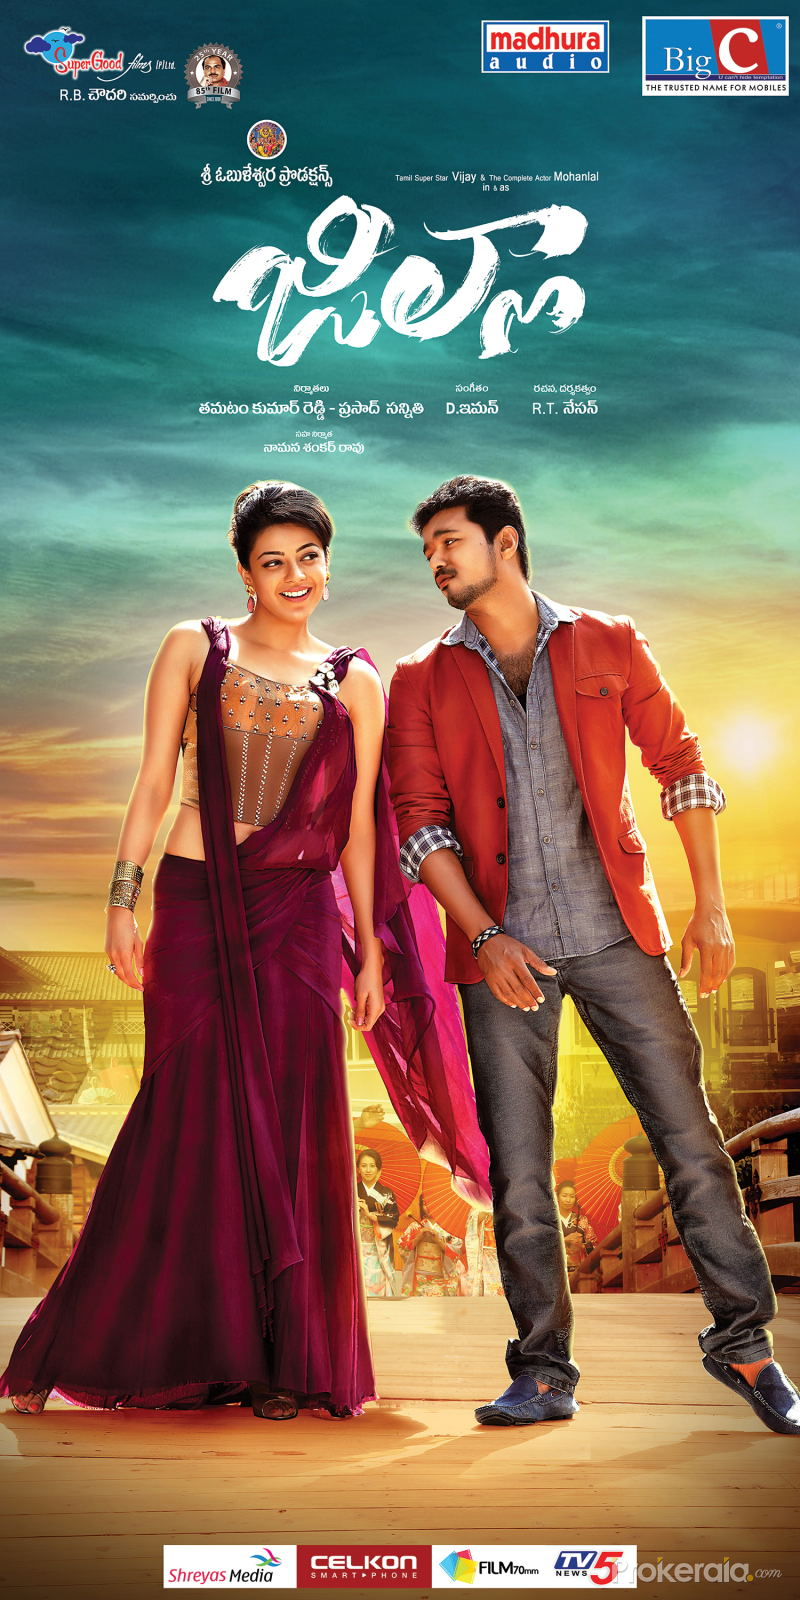 jilla telugu songs free download